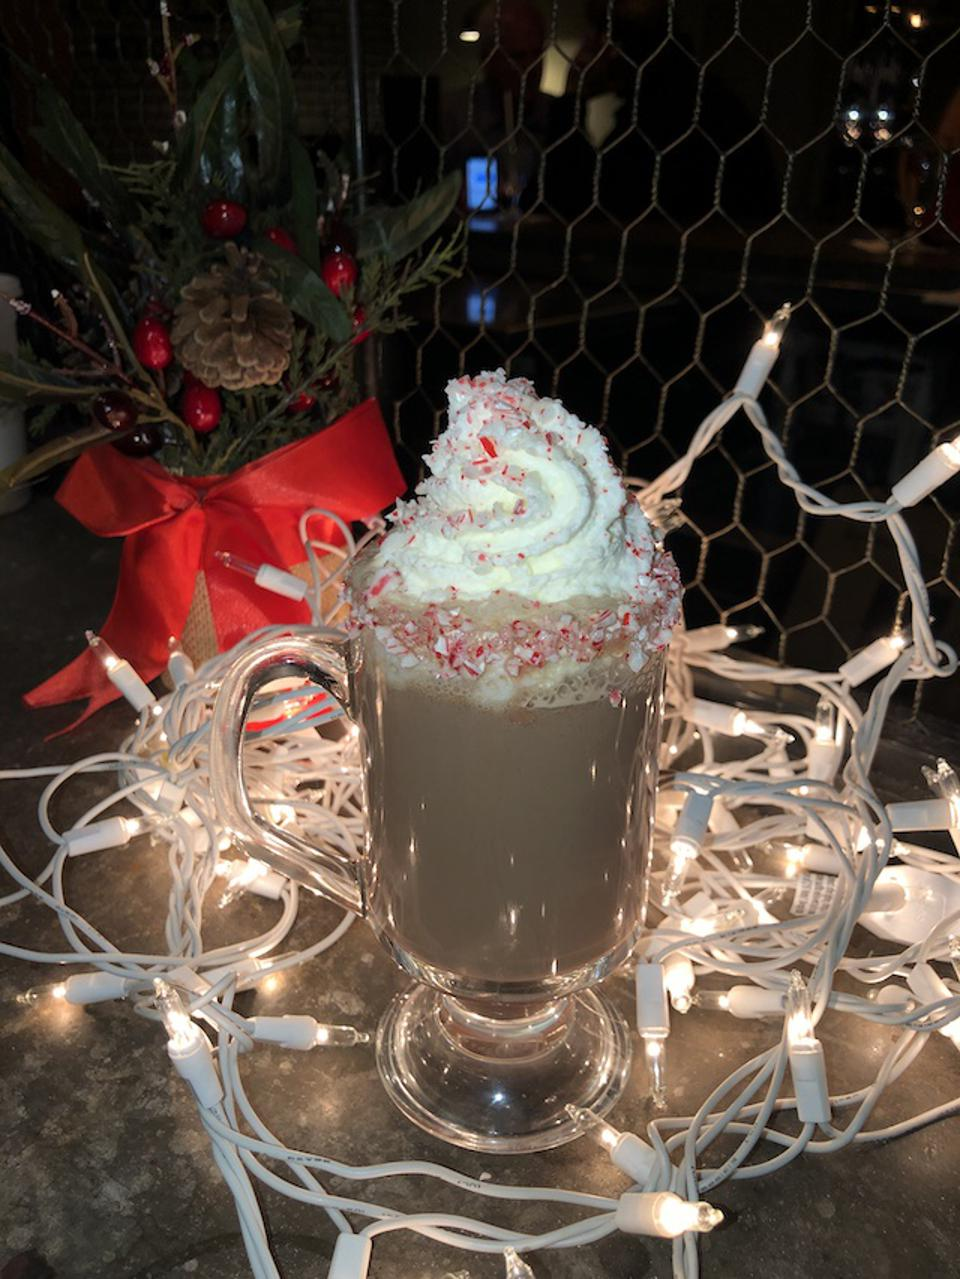 Peppermint Patty at the Precinct Kitchen + Bar